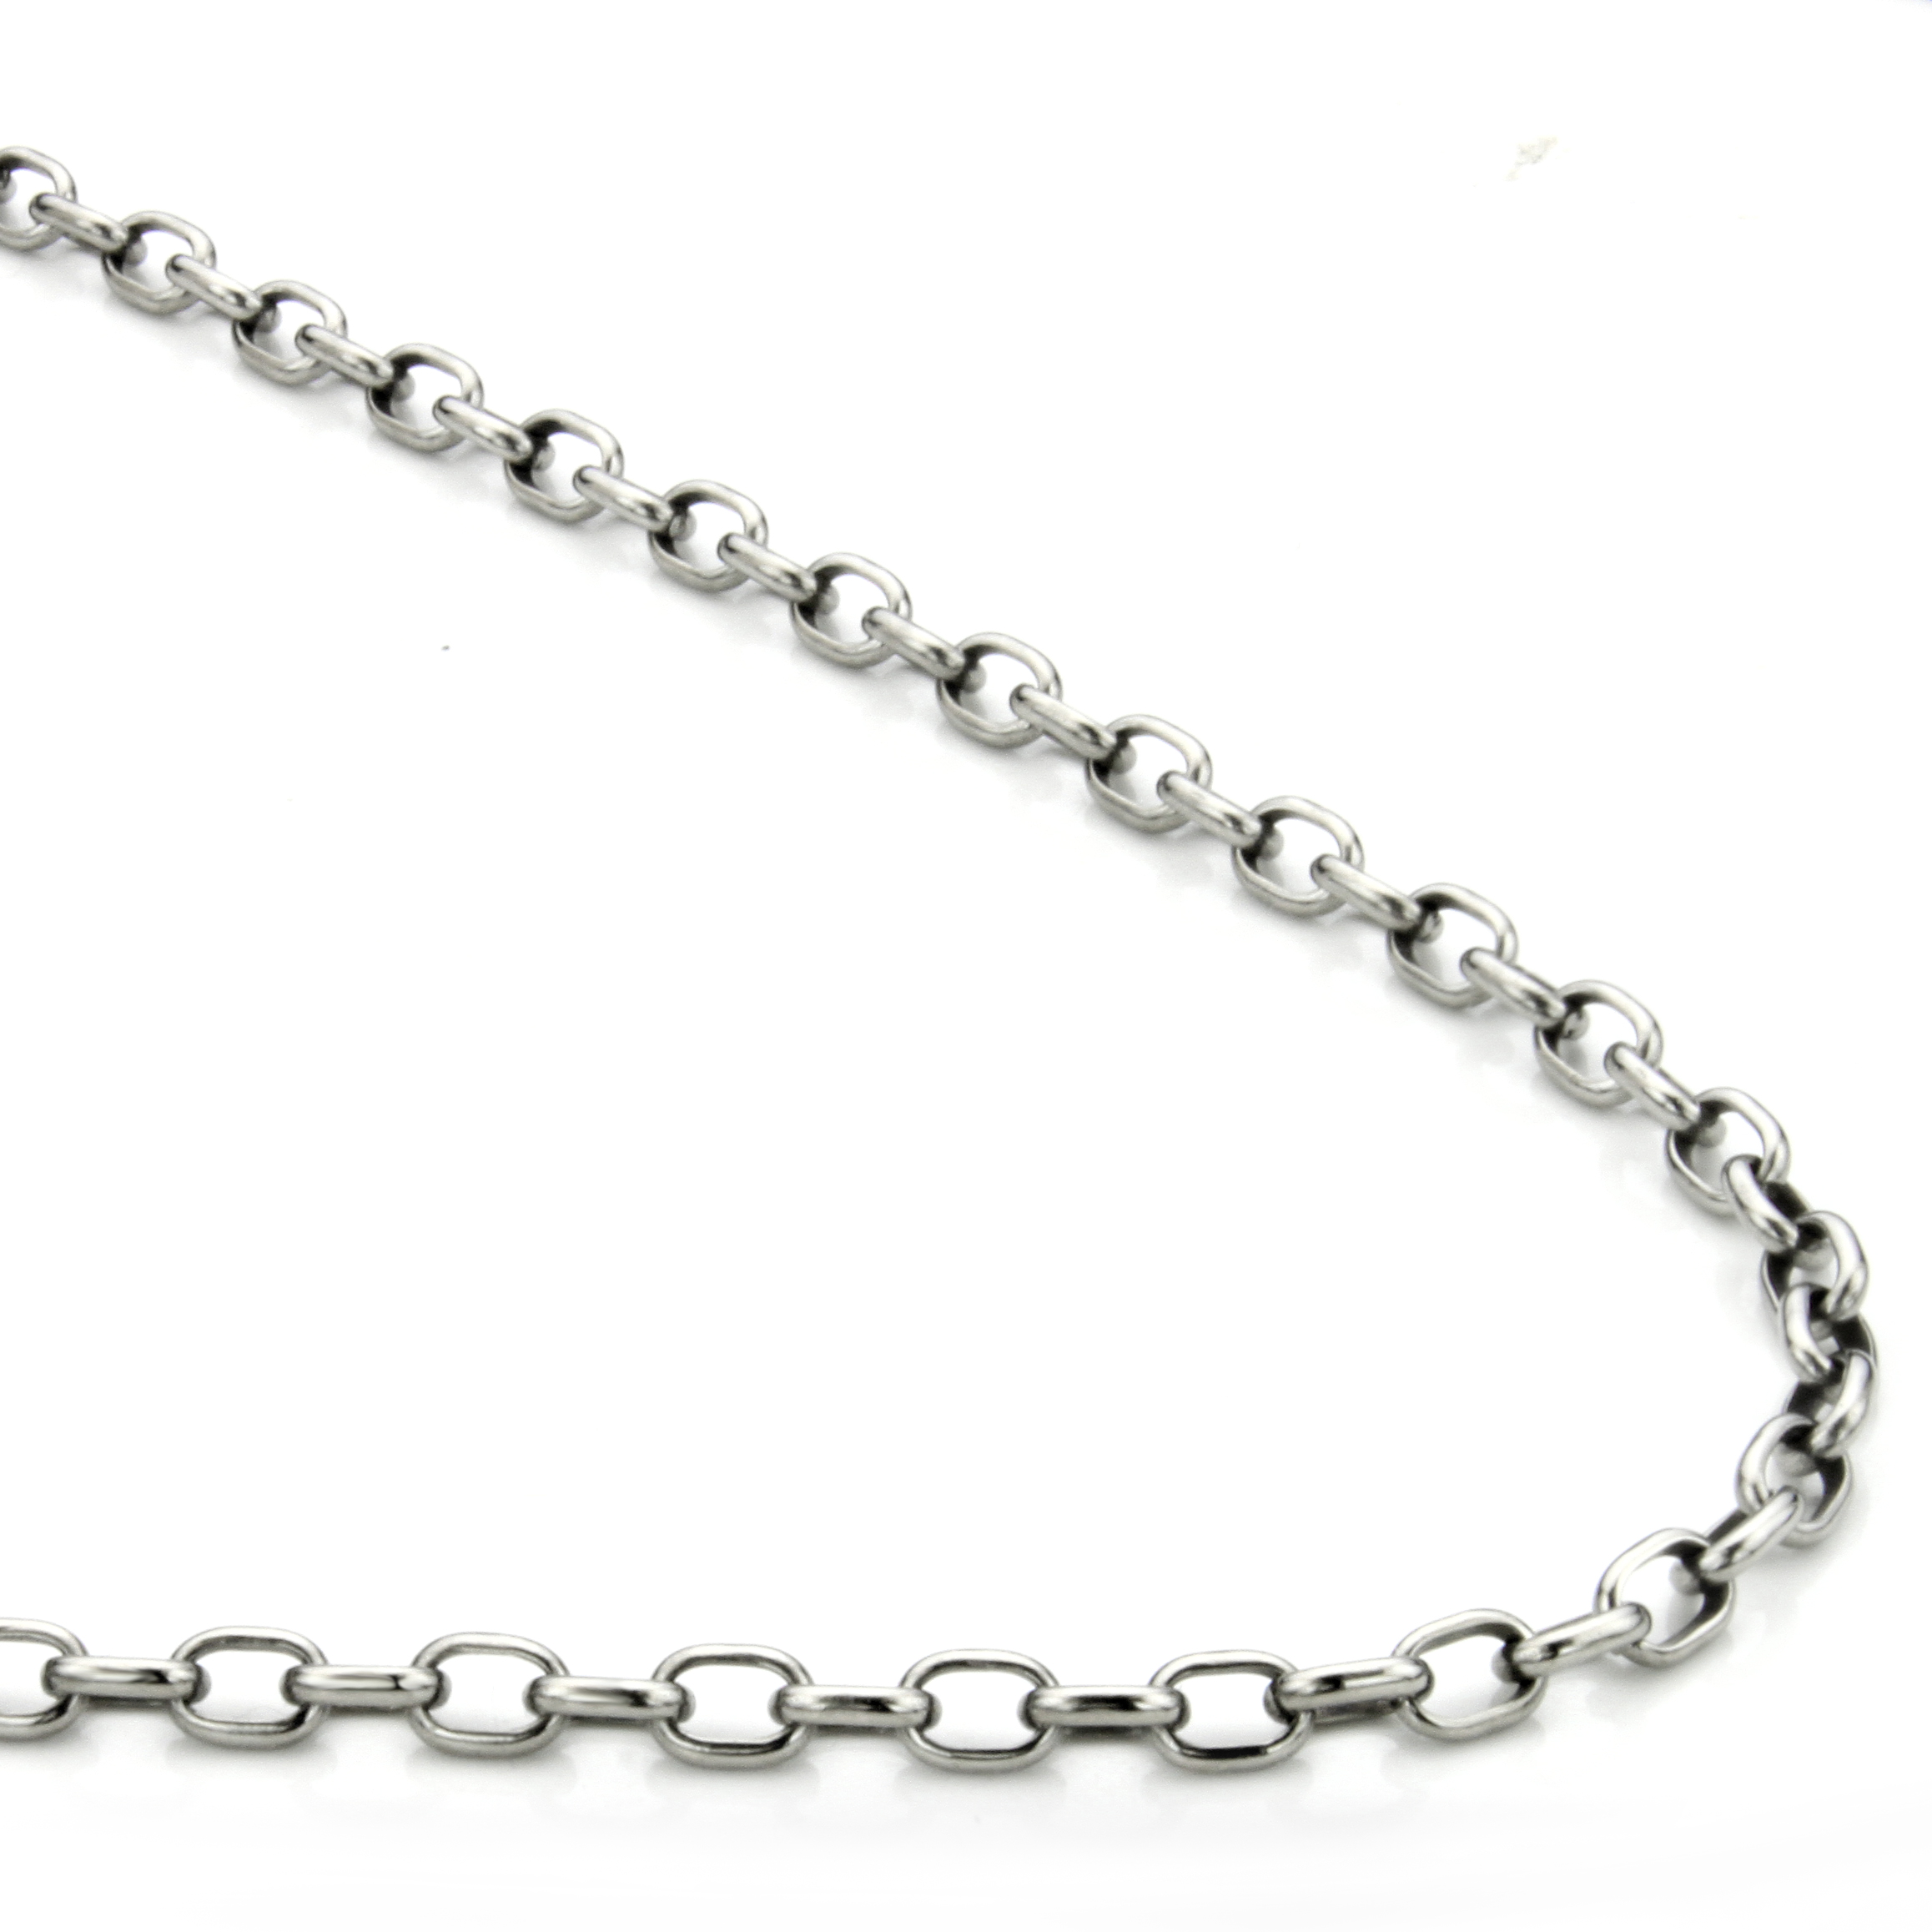 s necklace pin exclusively steel men available jewelry com at stainless chain chains link oval gemologica